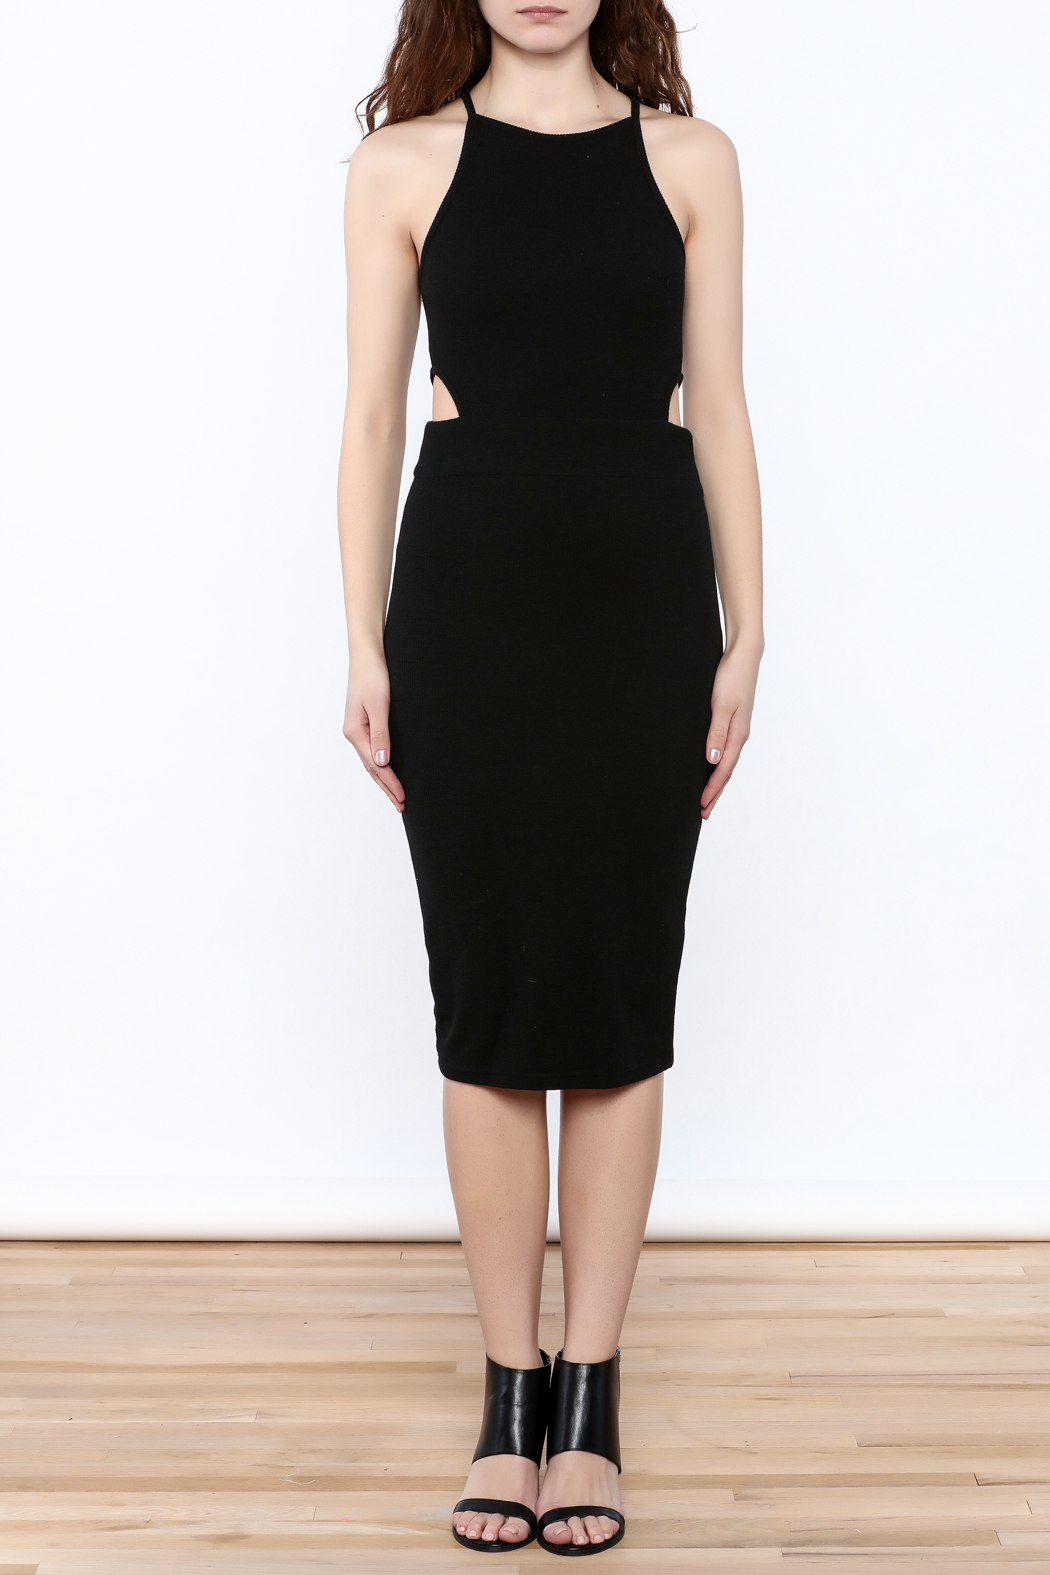 Bishop + Young Black Cut-Out Dress - Front Cropped Image